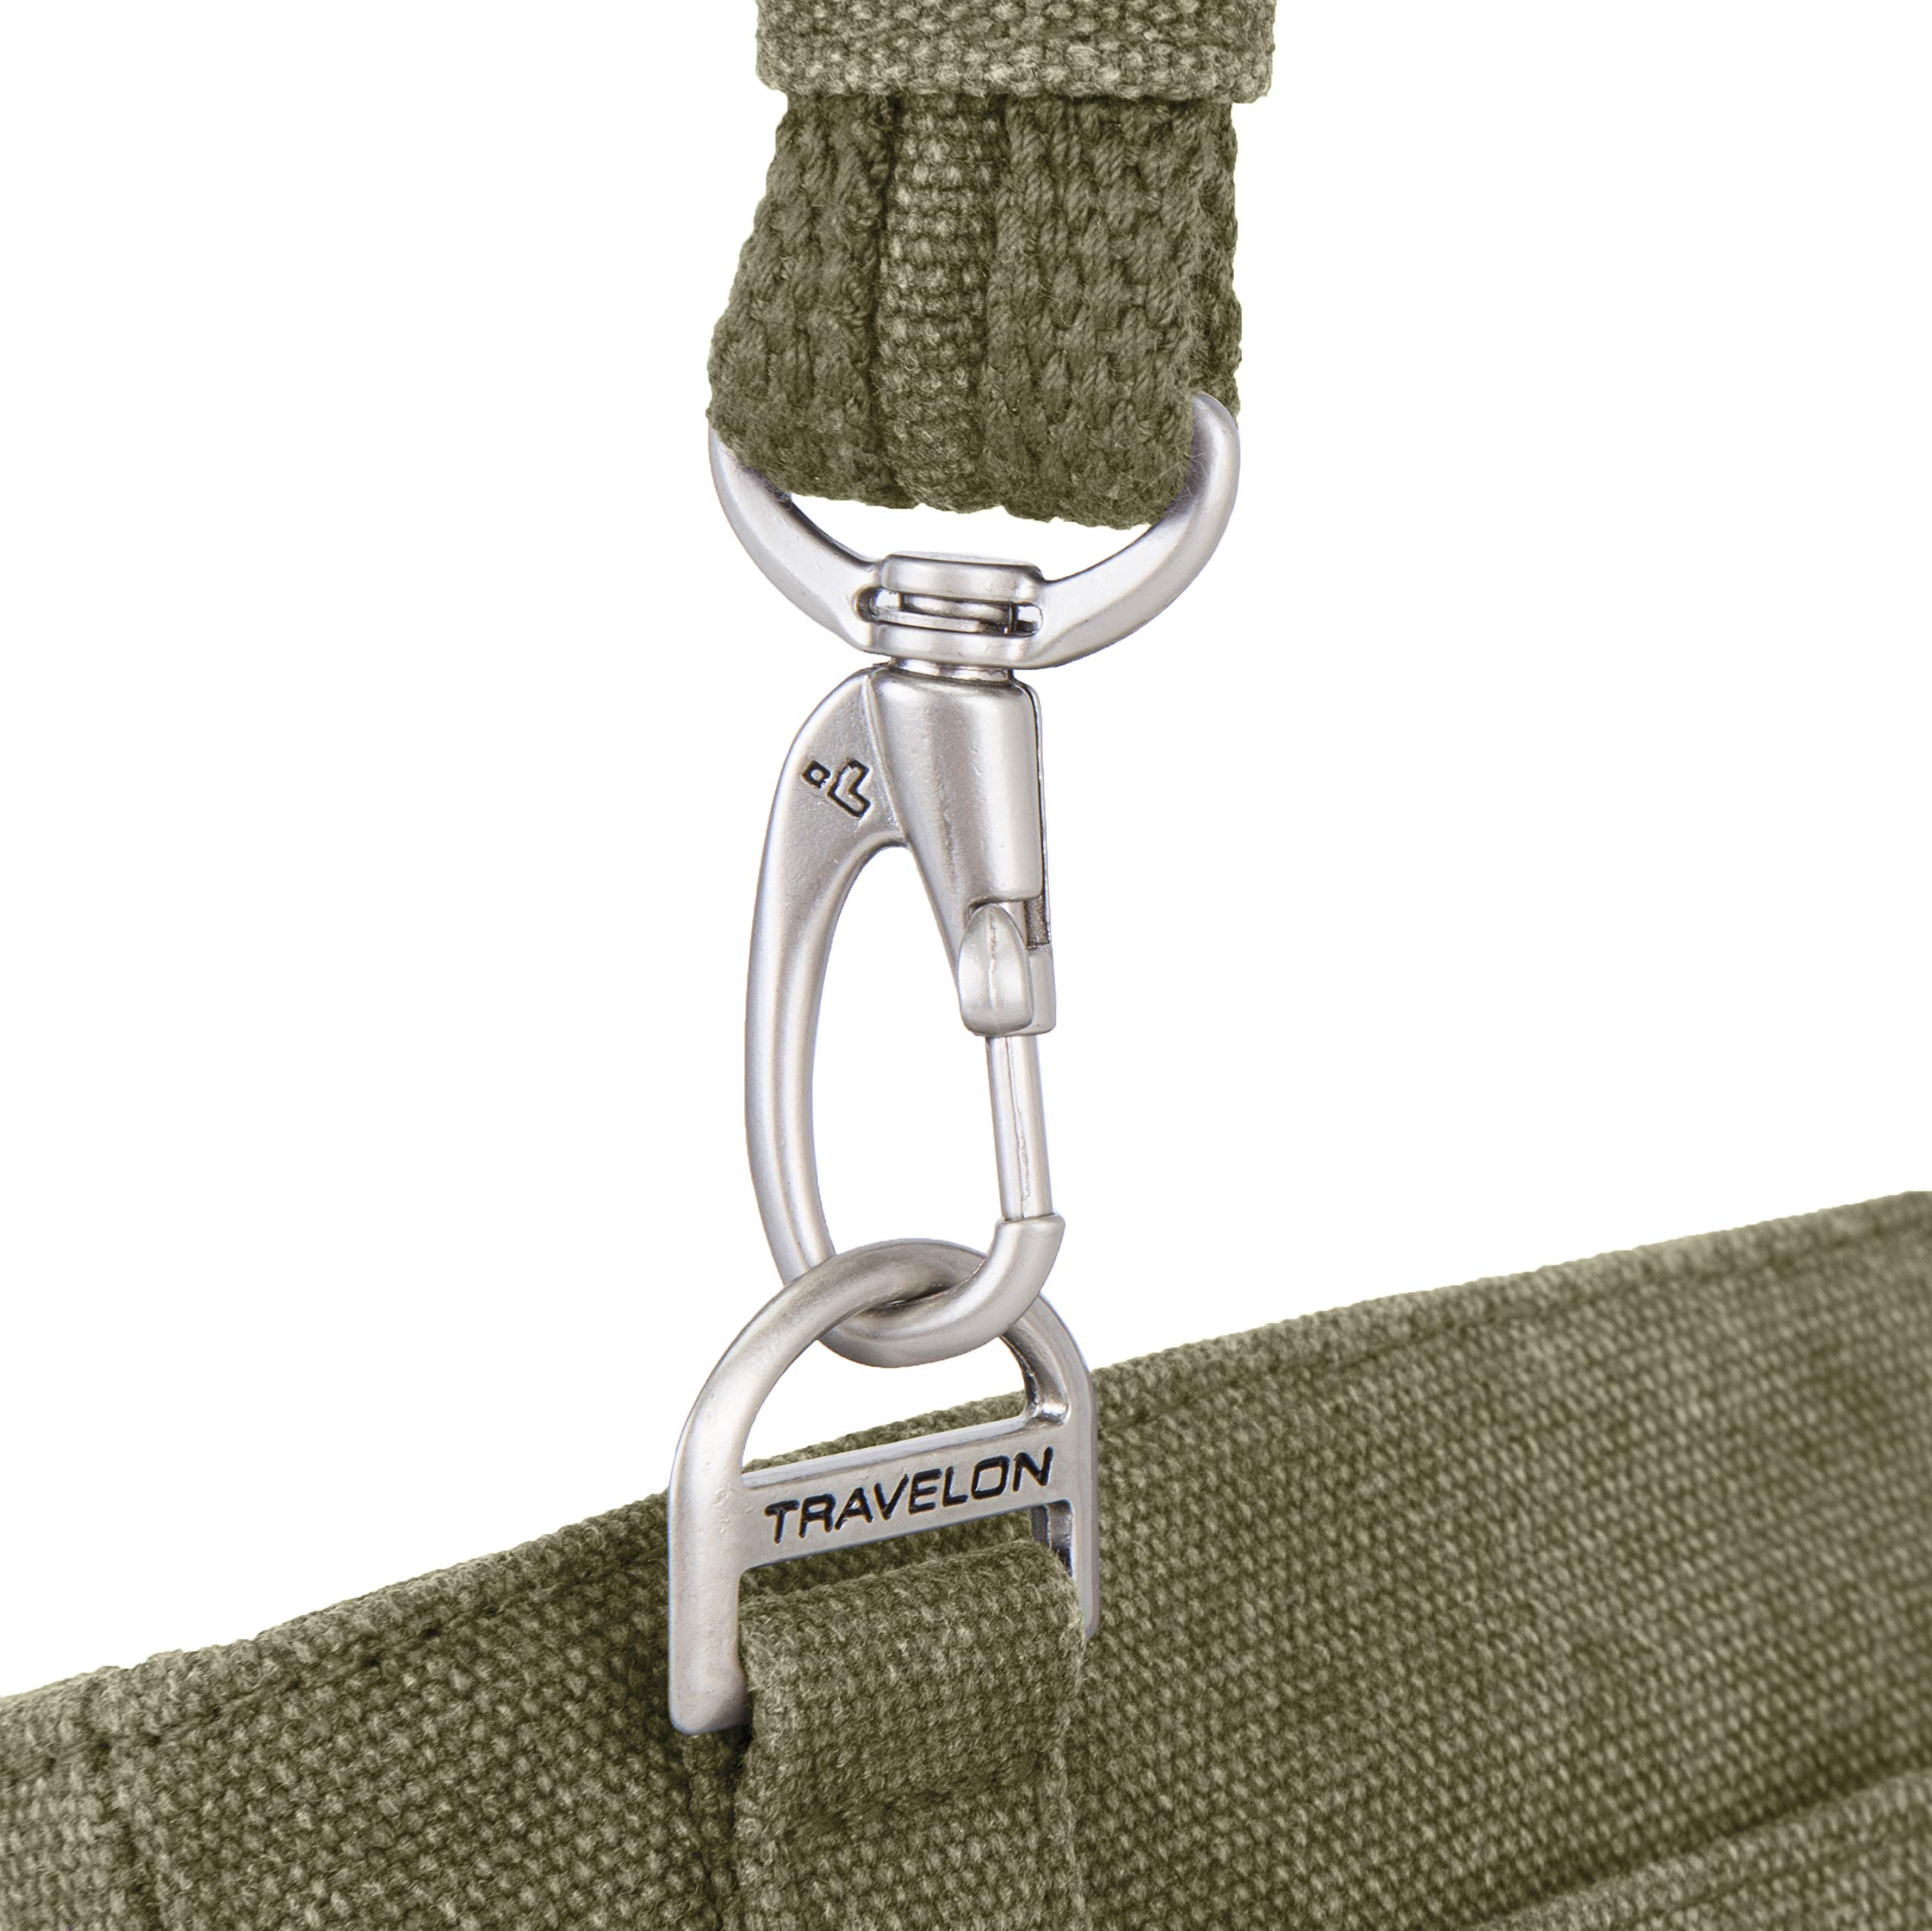 Travelon Anti-Theft Heritage Cross Body Bag, Sage, One Size by Travelon (Image #8)